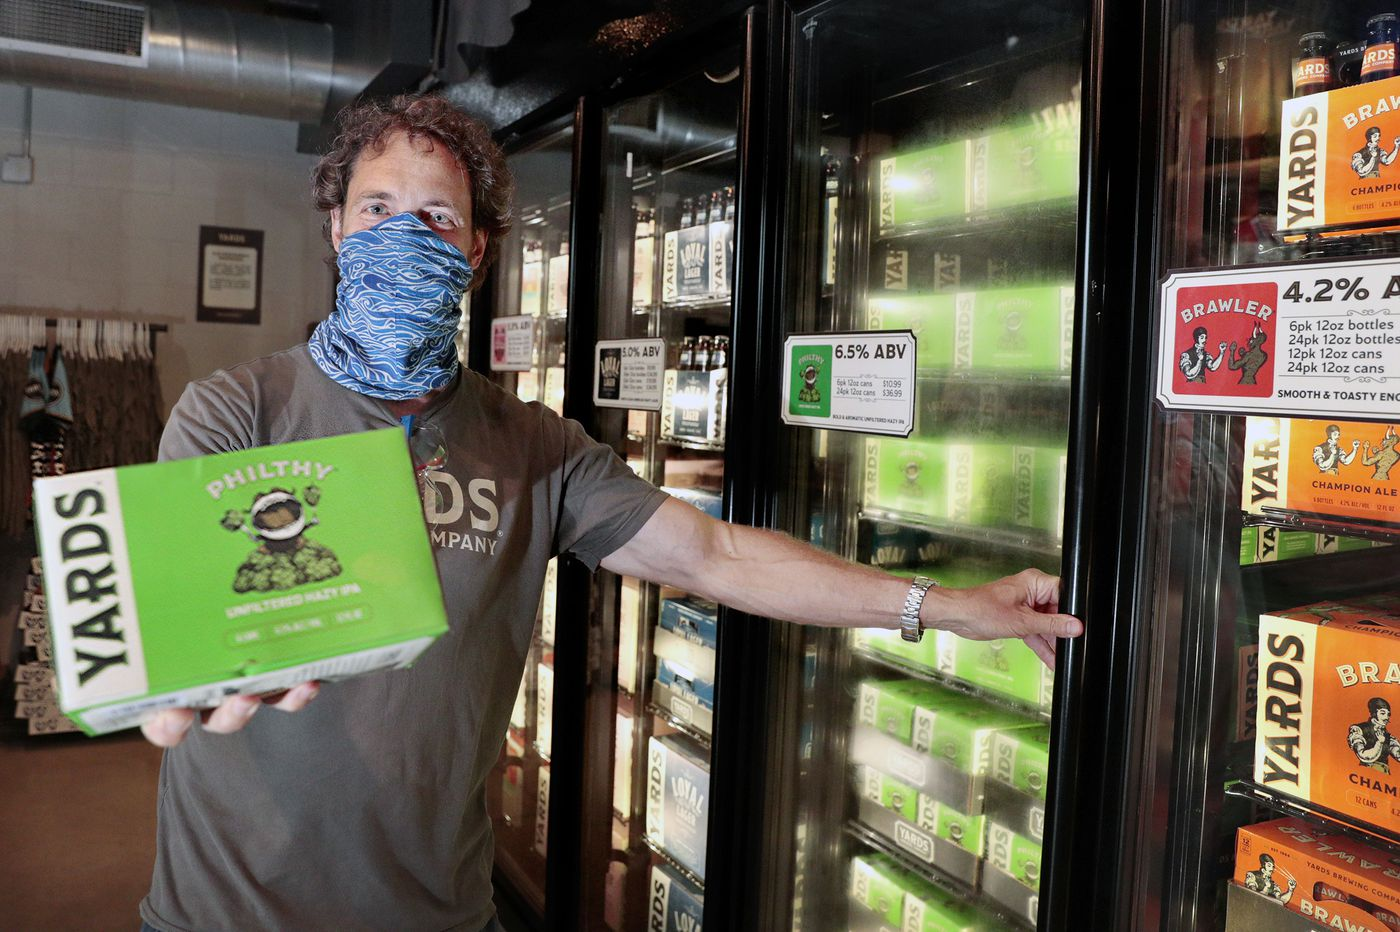 Philly craft breweries look to PPP and innovation to keep going in the pandemic